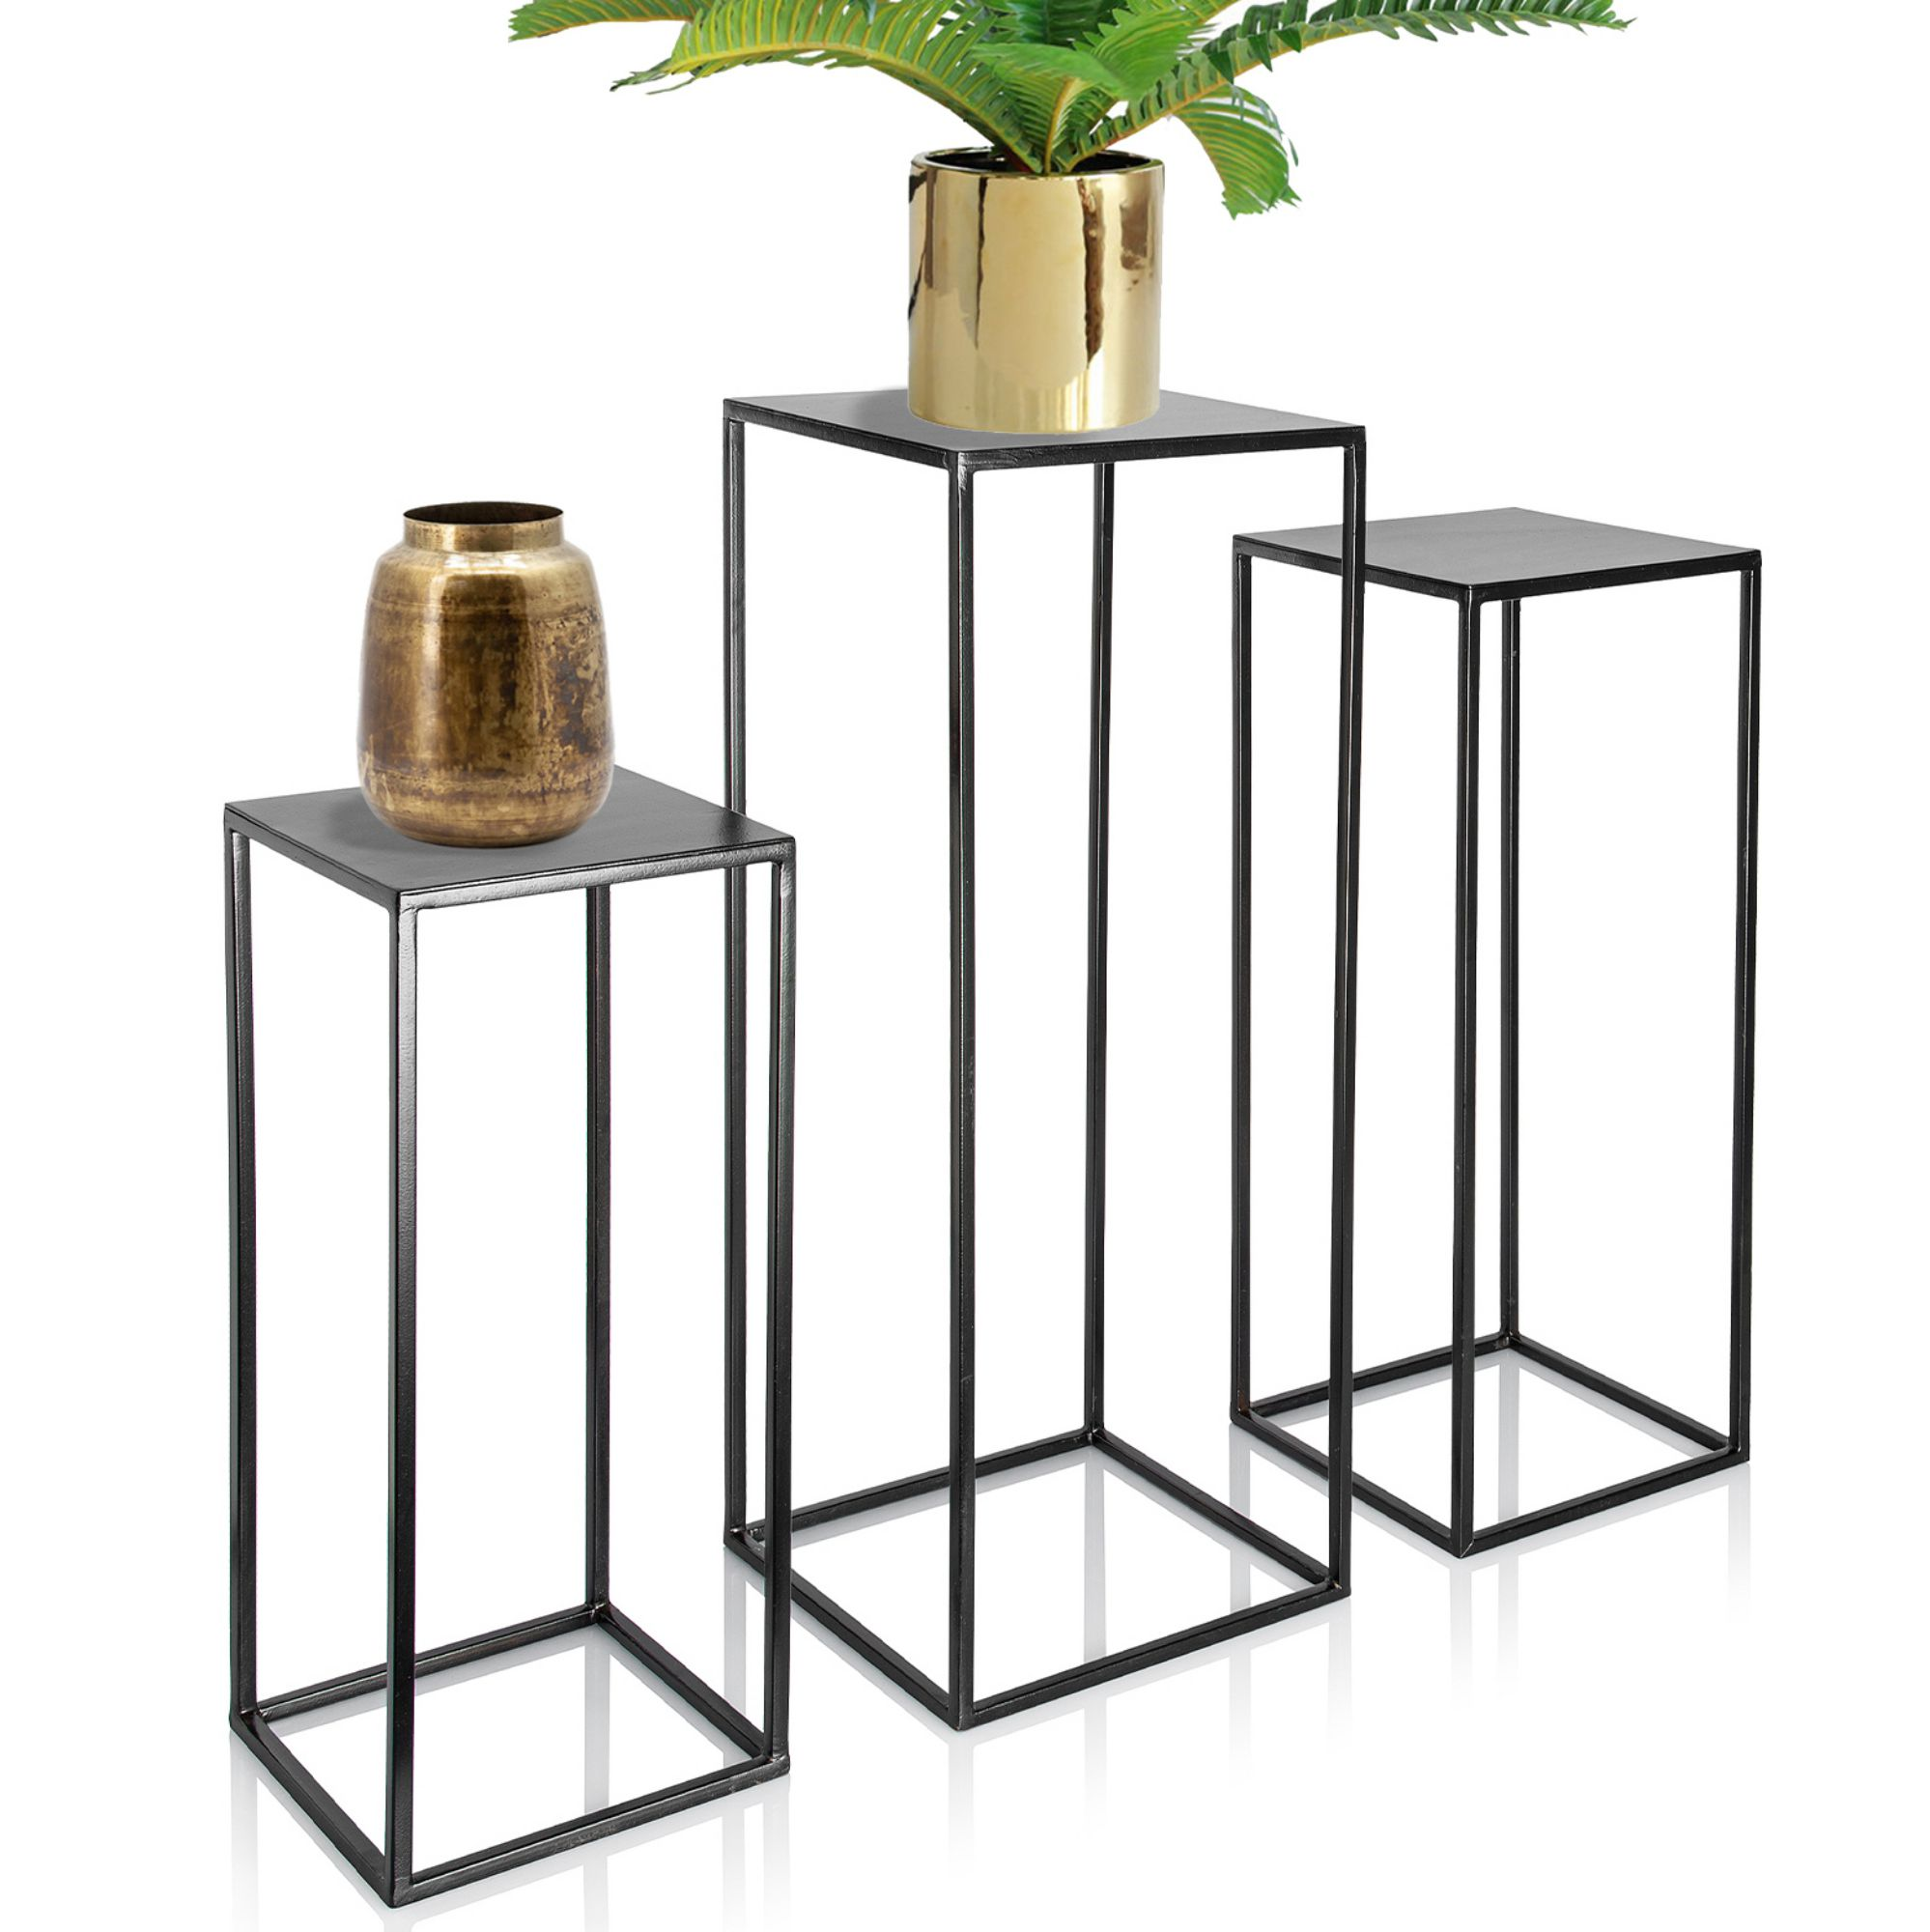 Picture of: Trio Metal Plant Stand With High Square Rack Flower Holder Kimisty